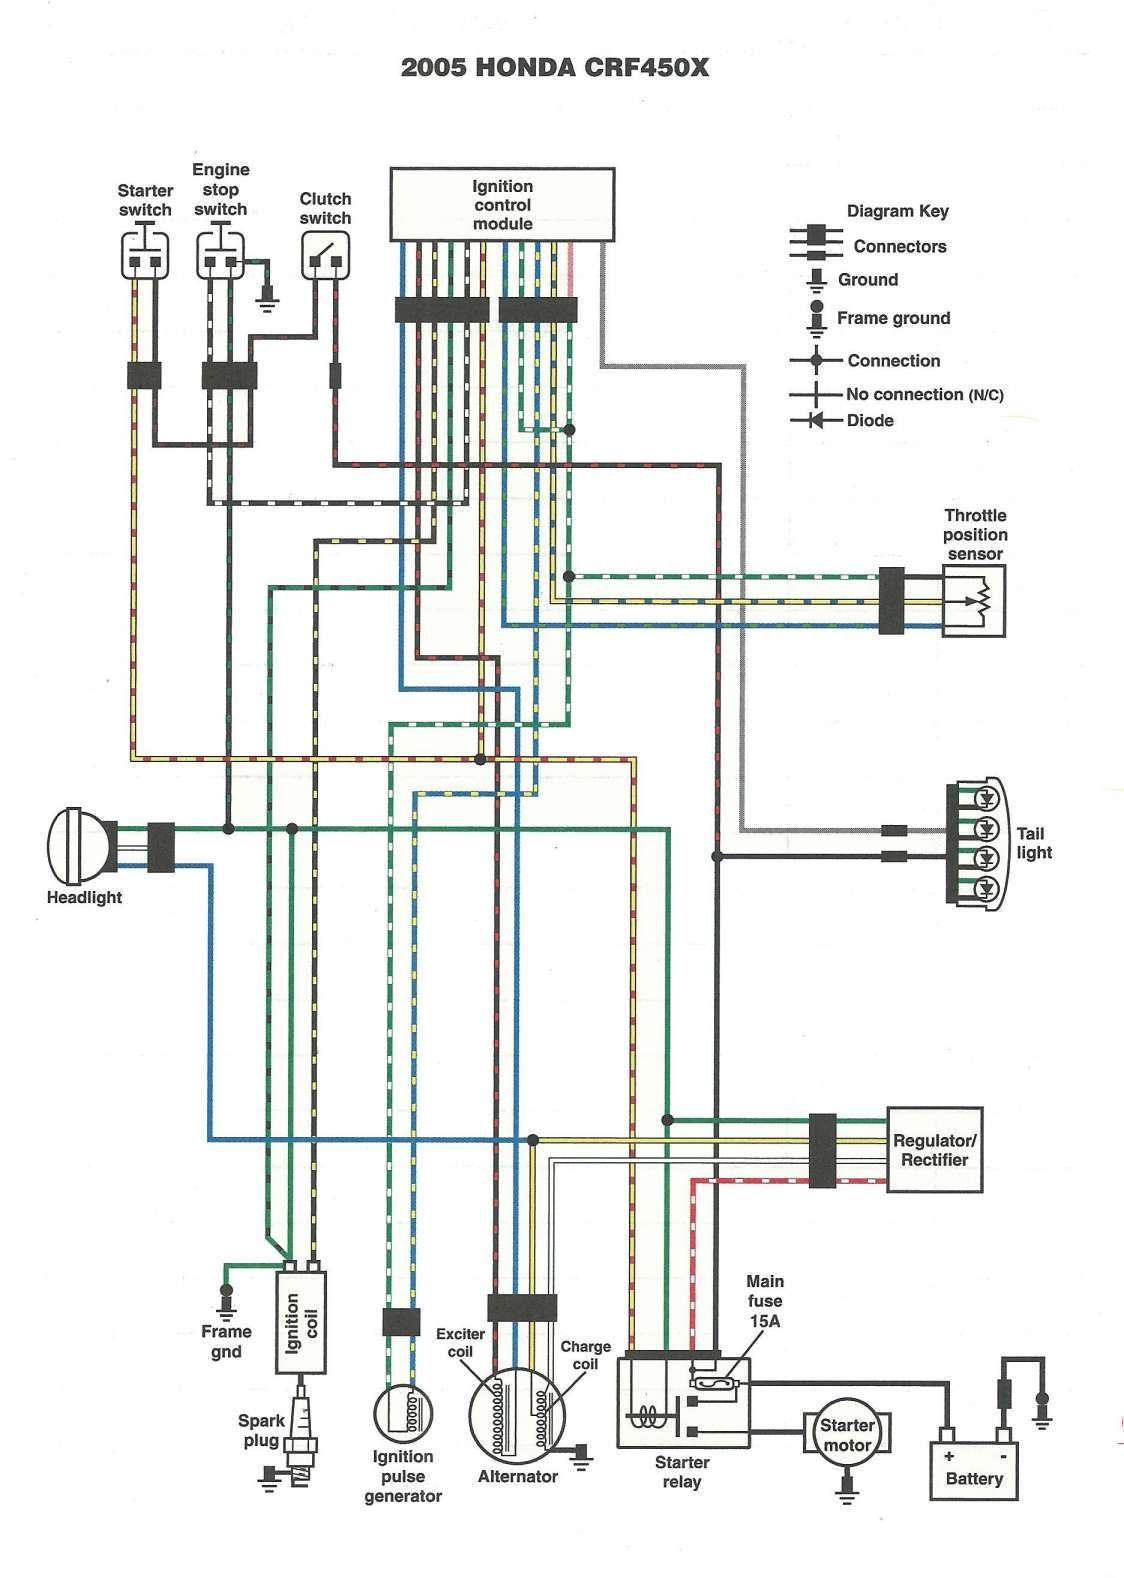 18 Motorcycle 4 Wire Ignition Switch Diagram Motorcycle Diagram Wiringg Net Motorcycle Wiring Electrical Diagram Electrical Wiring Diagram